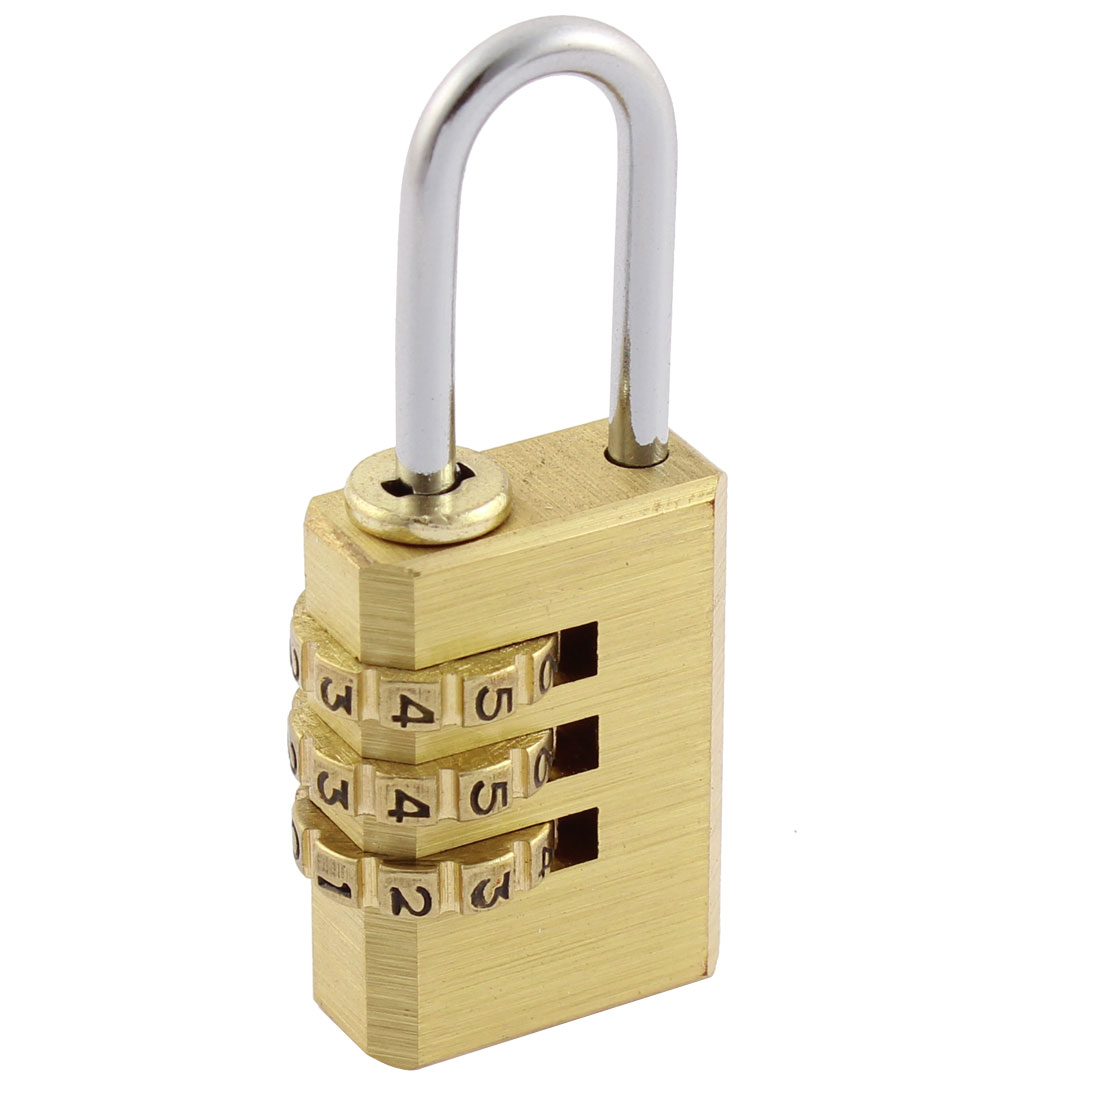 20mm Jewelry Boxes 3 Digit 0-9 Number Resettable Combination Lock Padlock